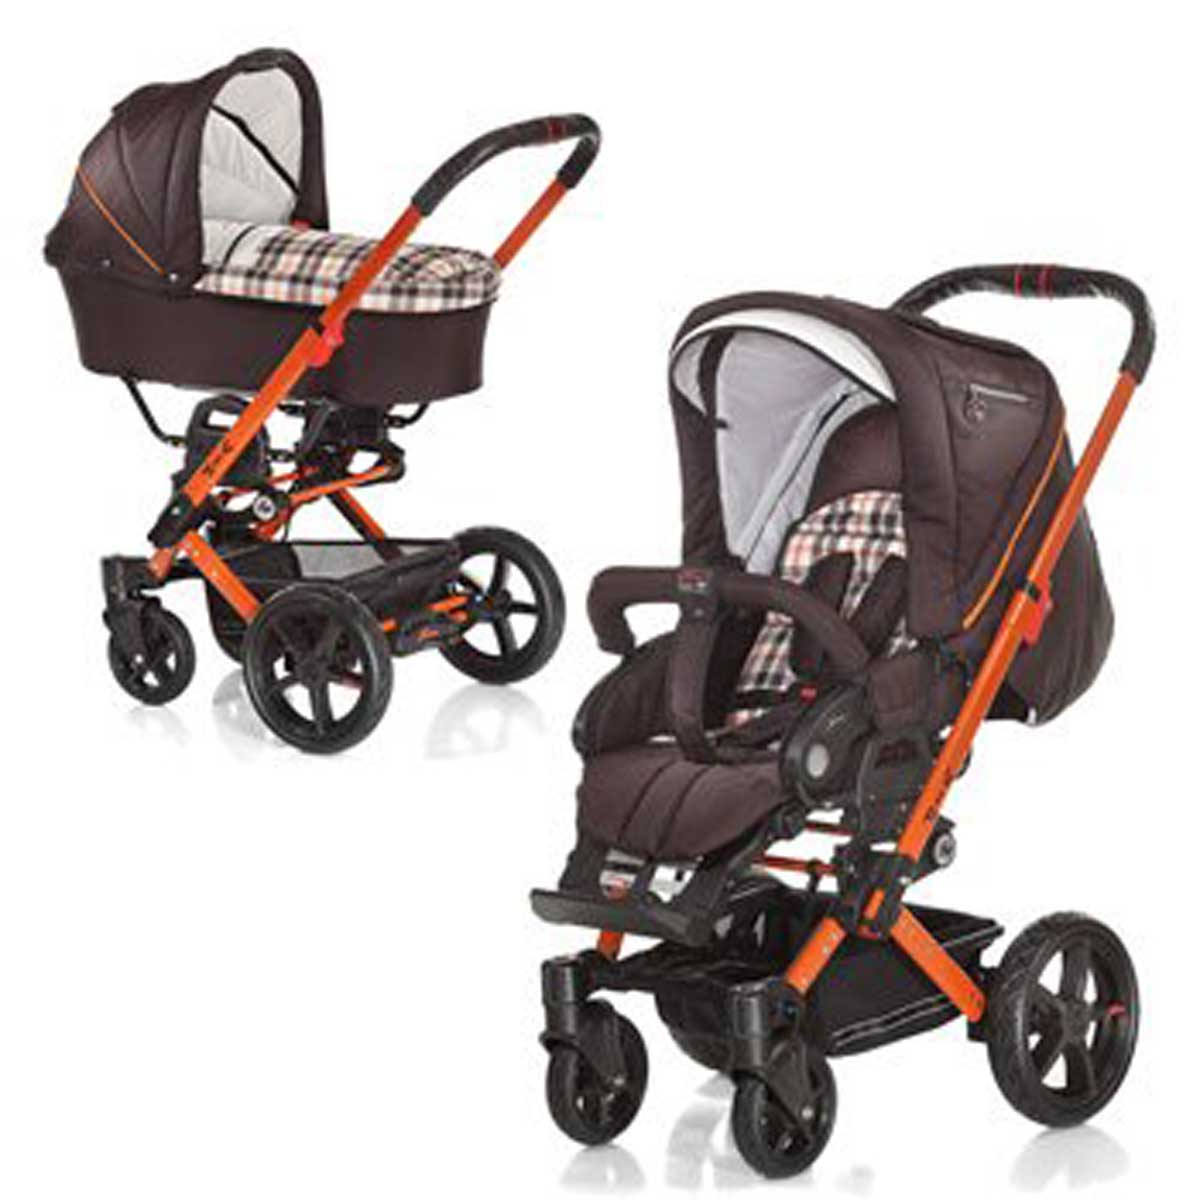 hartan vip xl kinderwagen mit tragetasche. Black Bedroom Furniture Sets. Home Design Ideas